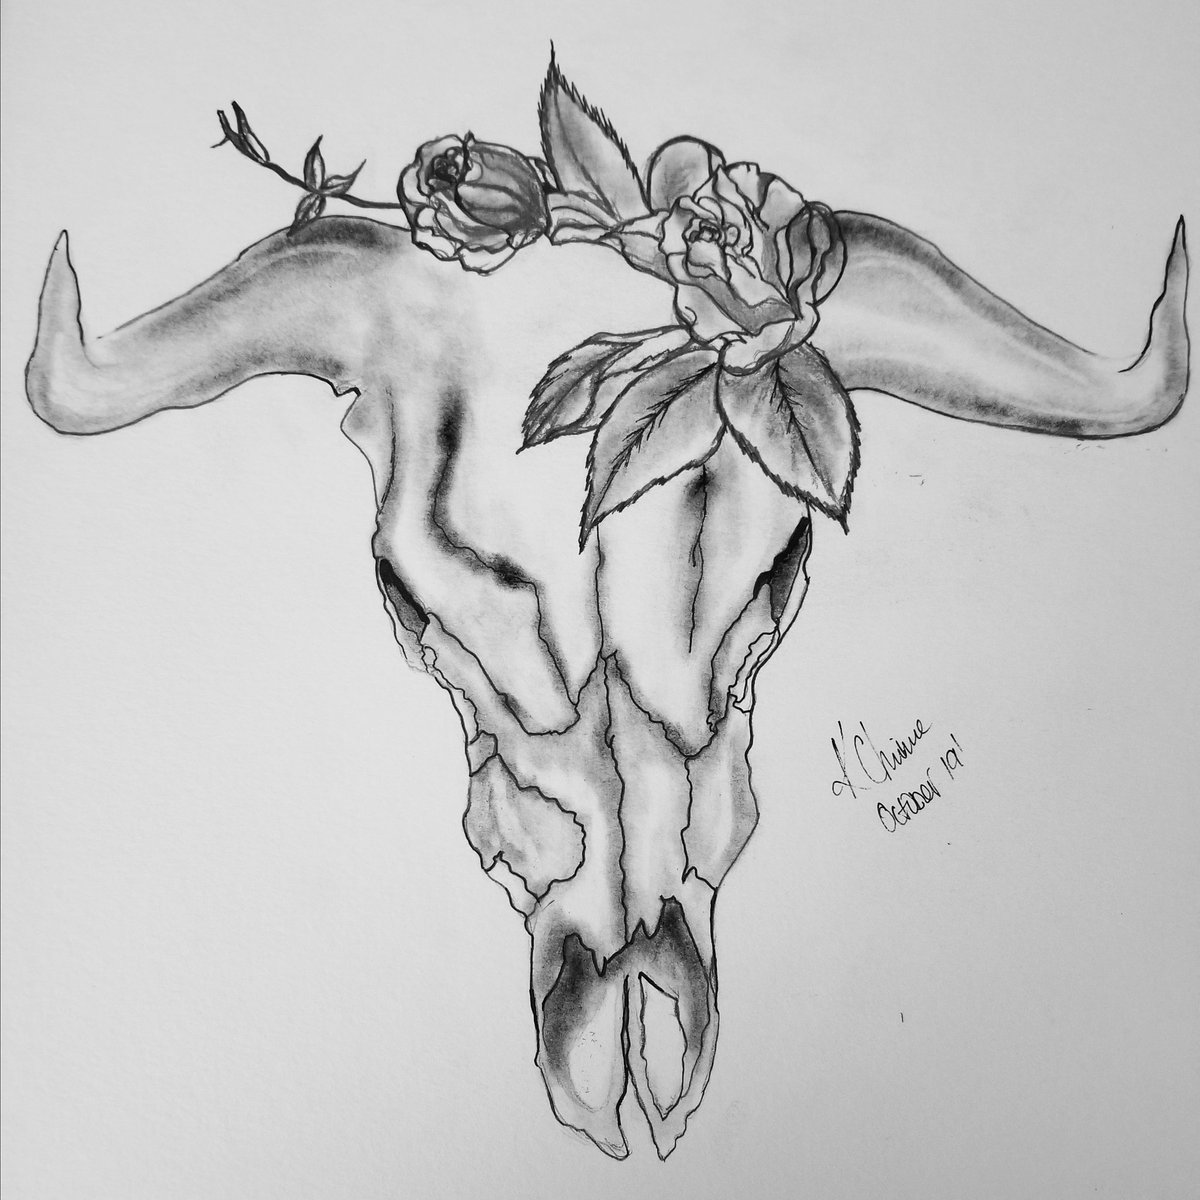 Took a few days off, but im back with #inktoberday11 see all of my inktober drawings here: http://www.instagram.com/wikkedartistry ____________________________________ #inktober2019  #cattel #cattelskull #pencil #charcoaldrawing #ink #roses #leaves #rosedrawing #blackandwhite #pencildrawingpic.twitter.com/uEtDGa7PtI